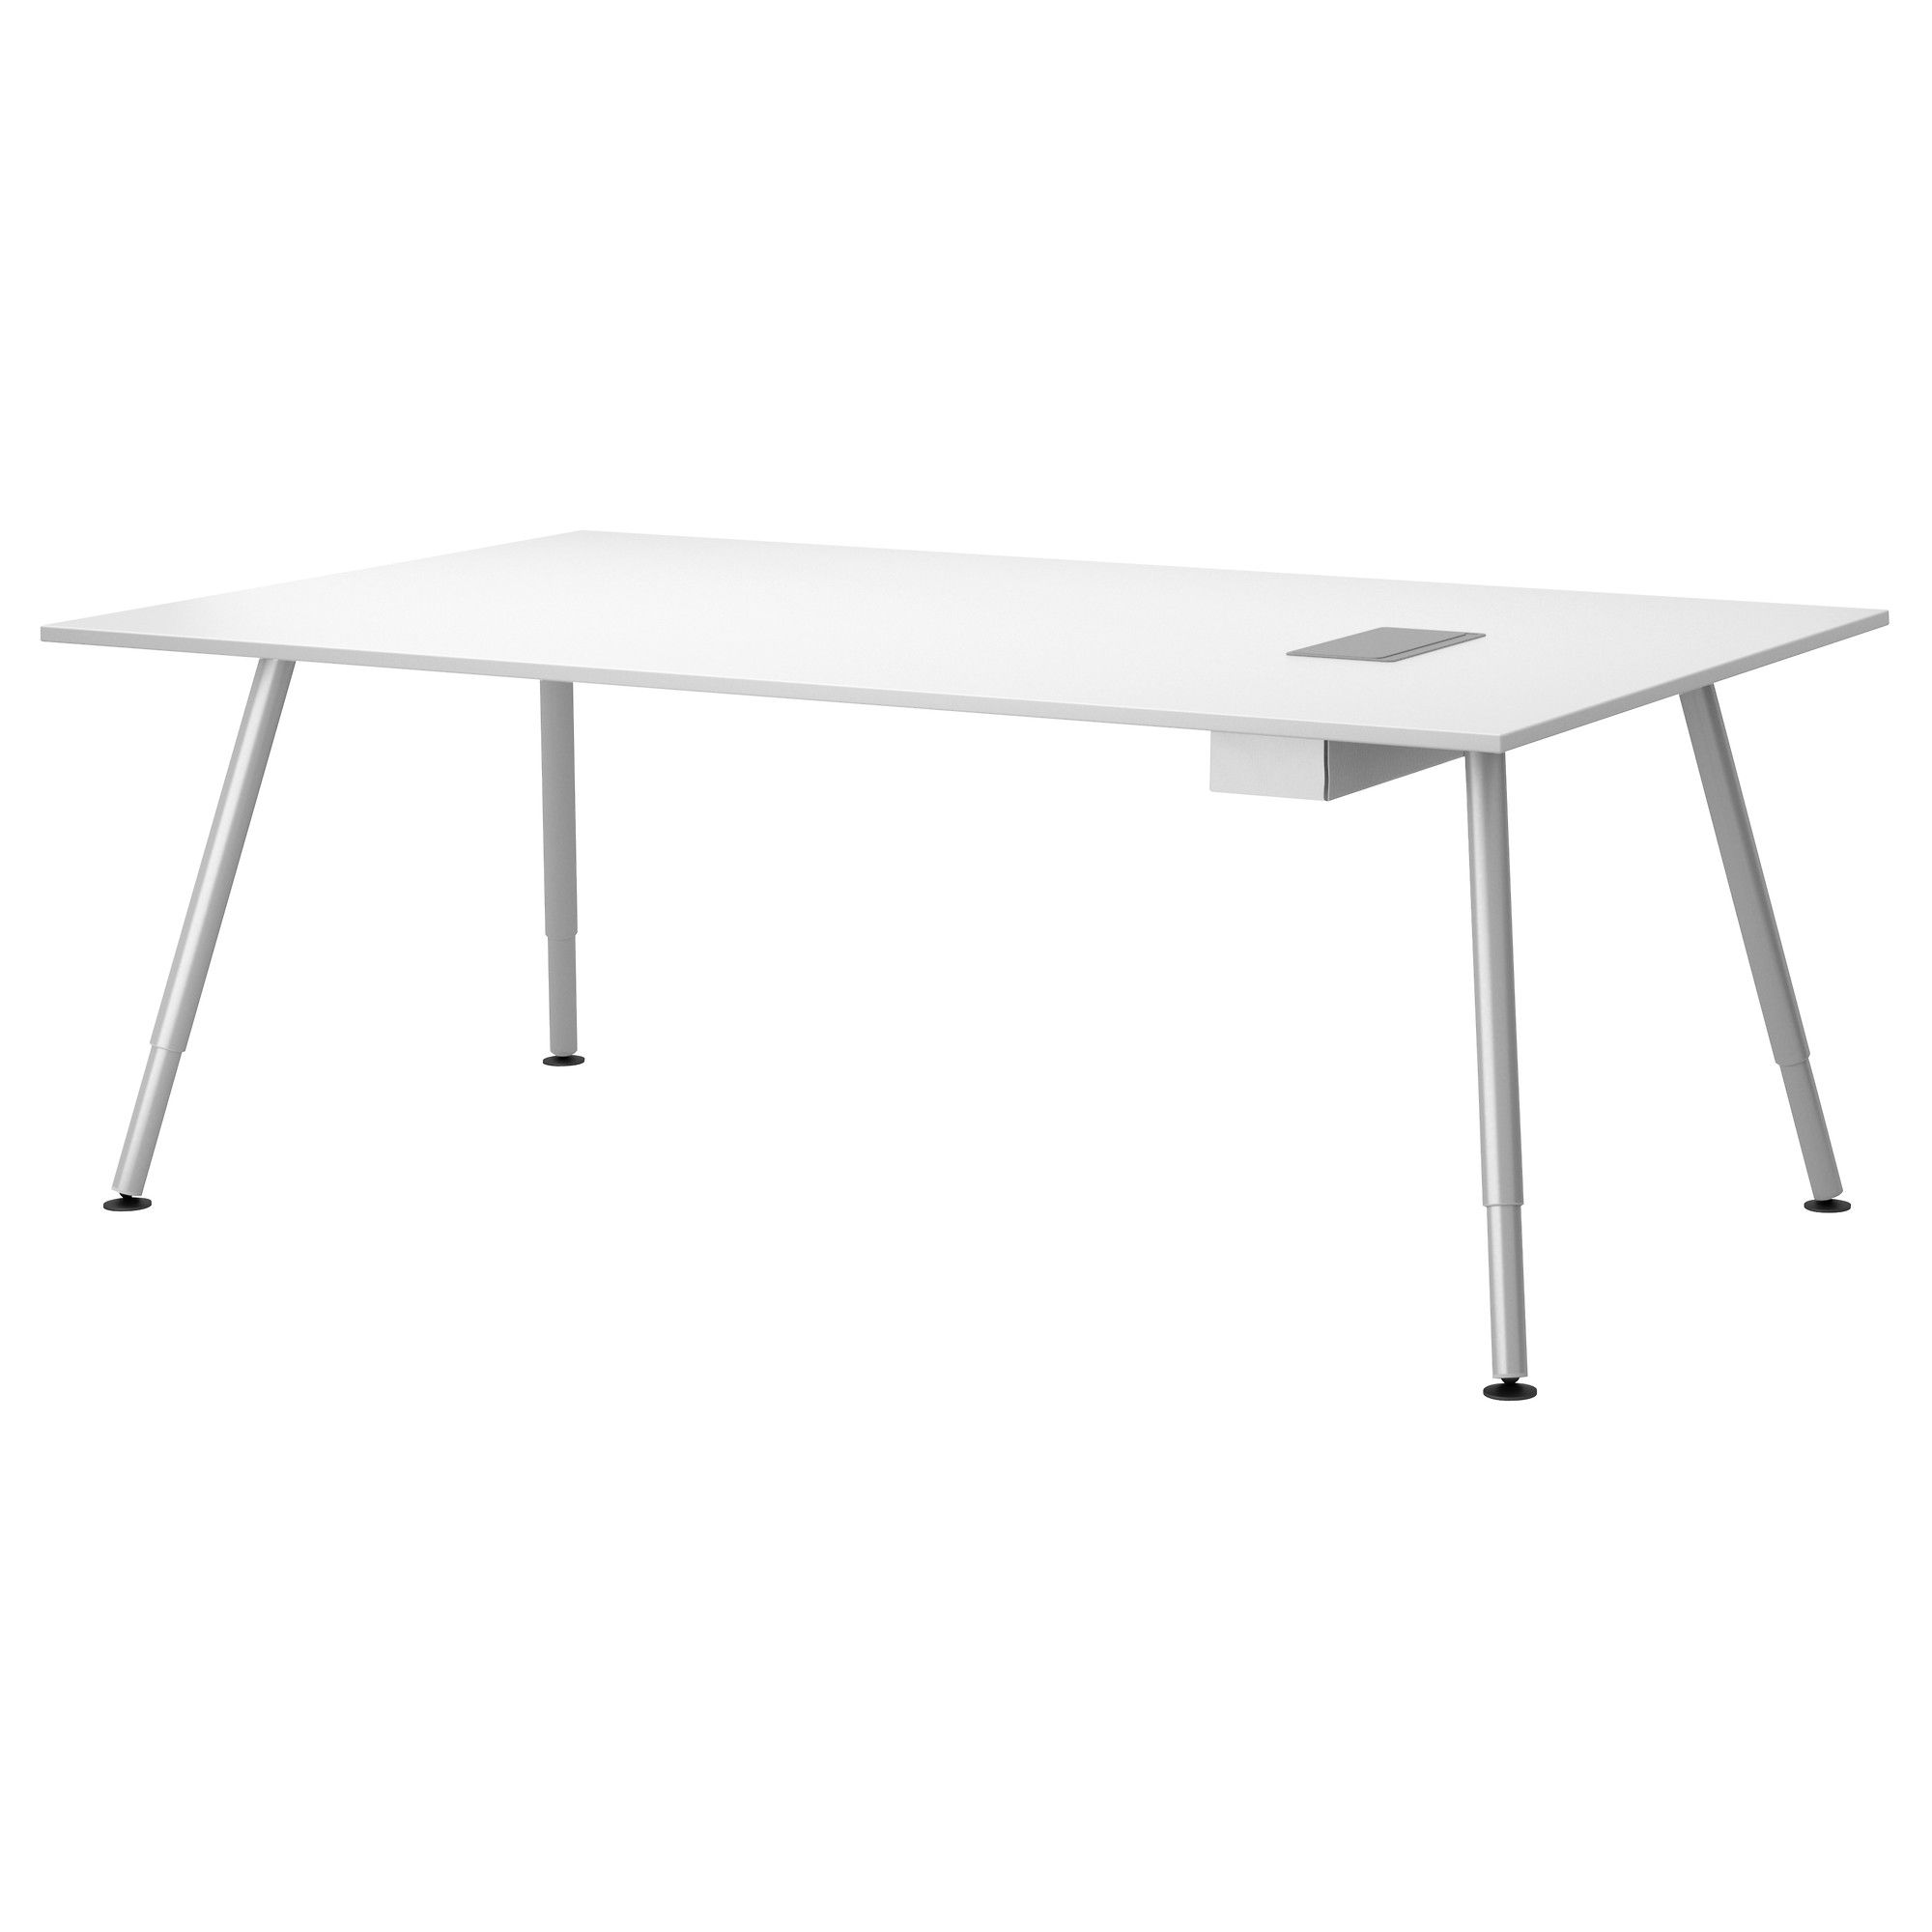 Galant conference table white silver color ikea conference table vision for - Table bureau ikea ...